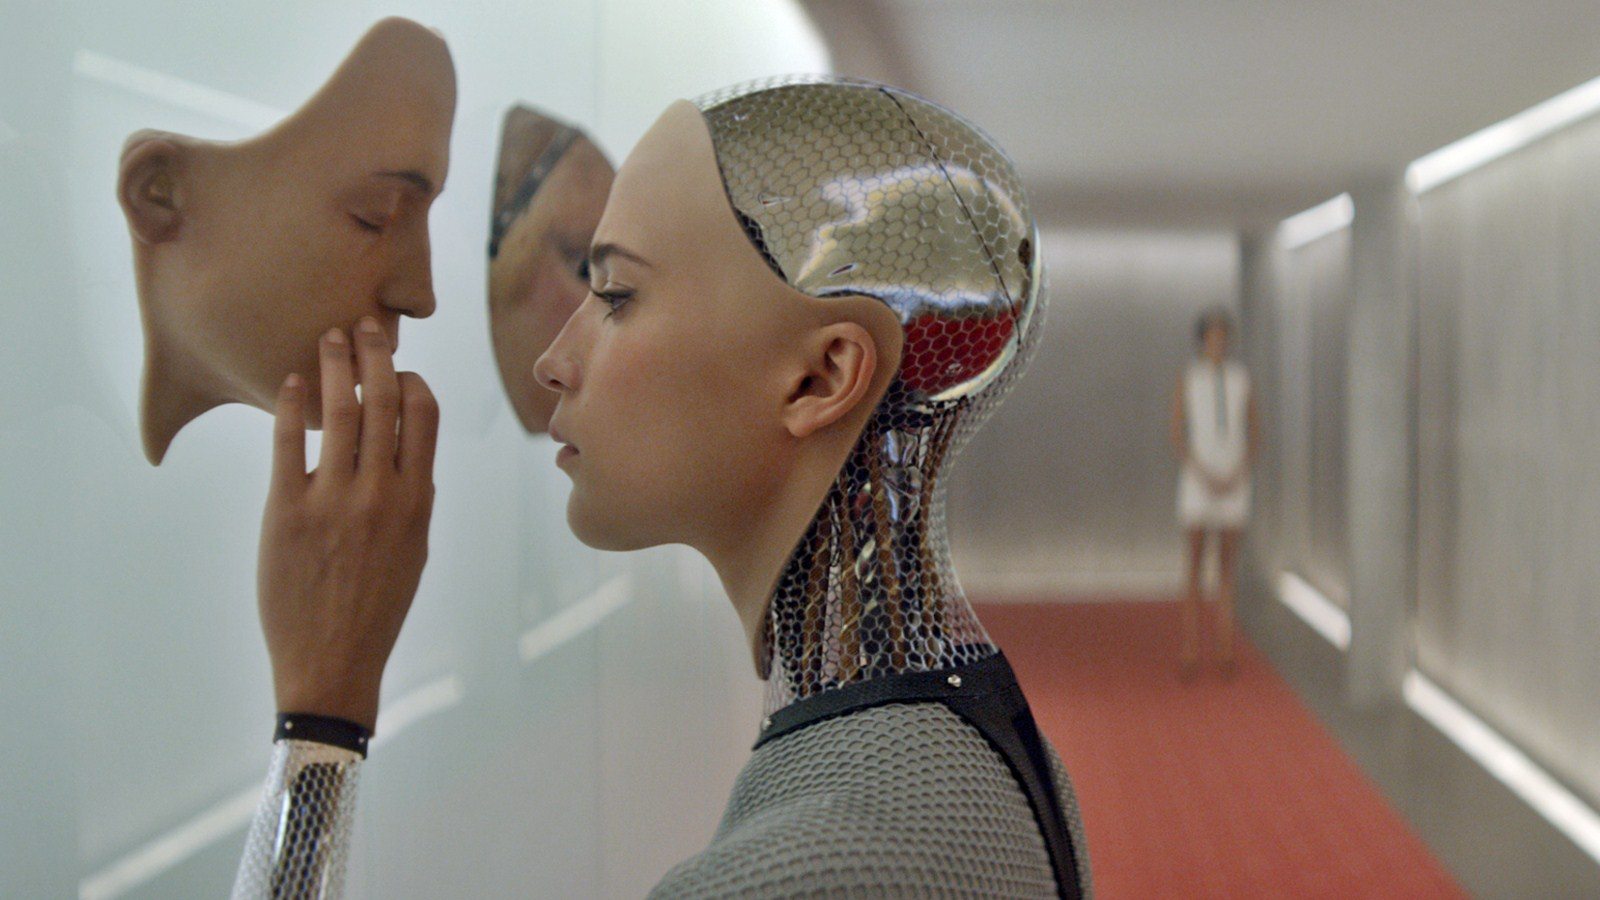 ex machina vikander | 21 movies free to stream right now: Parasite, The Big Short, Train to Busan, more | The Paradise